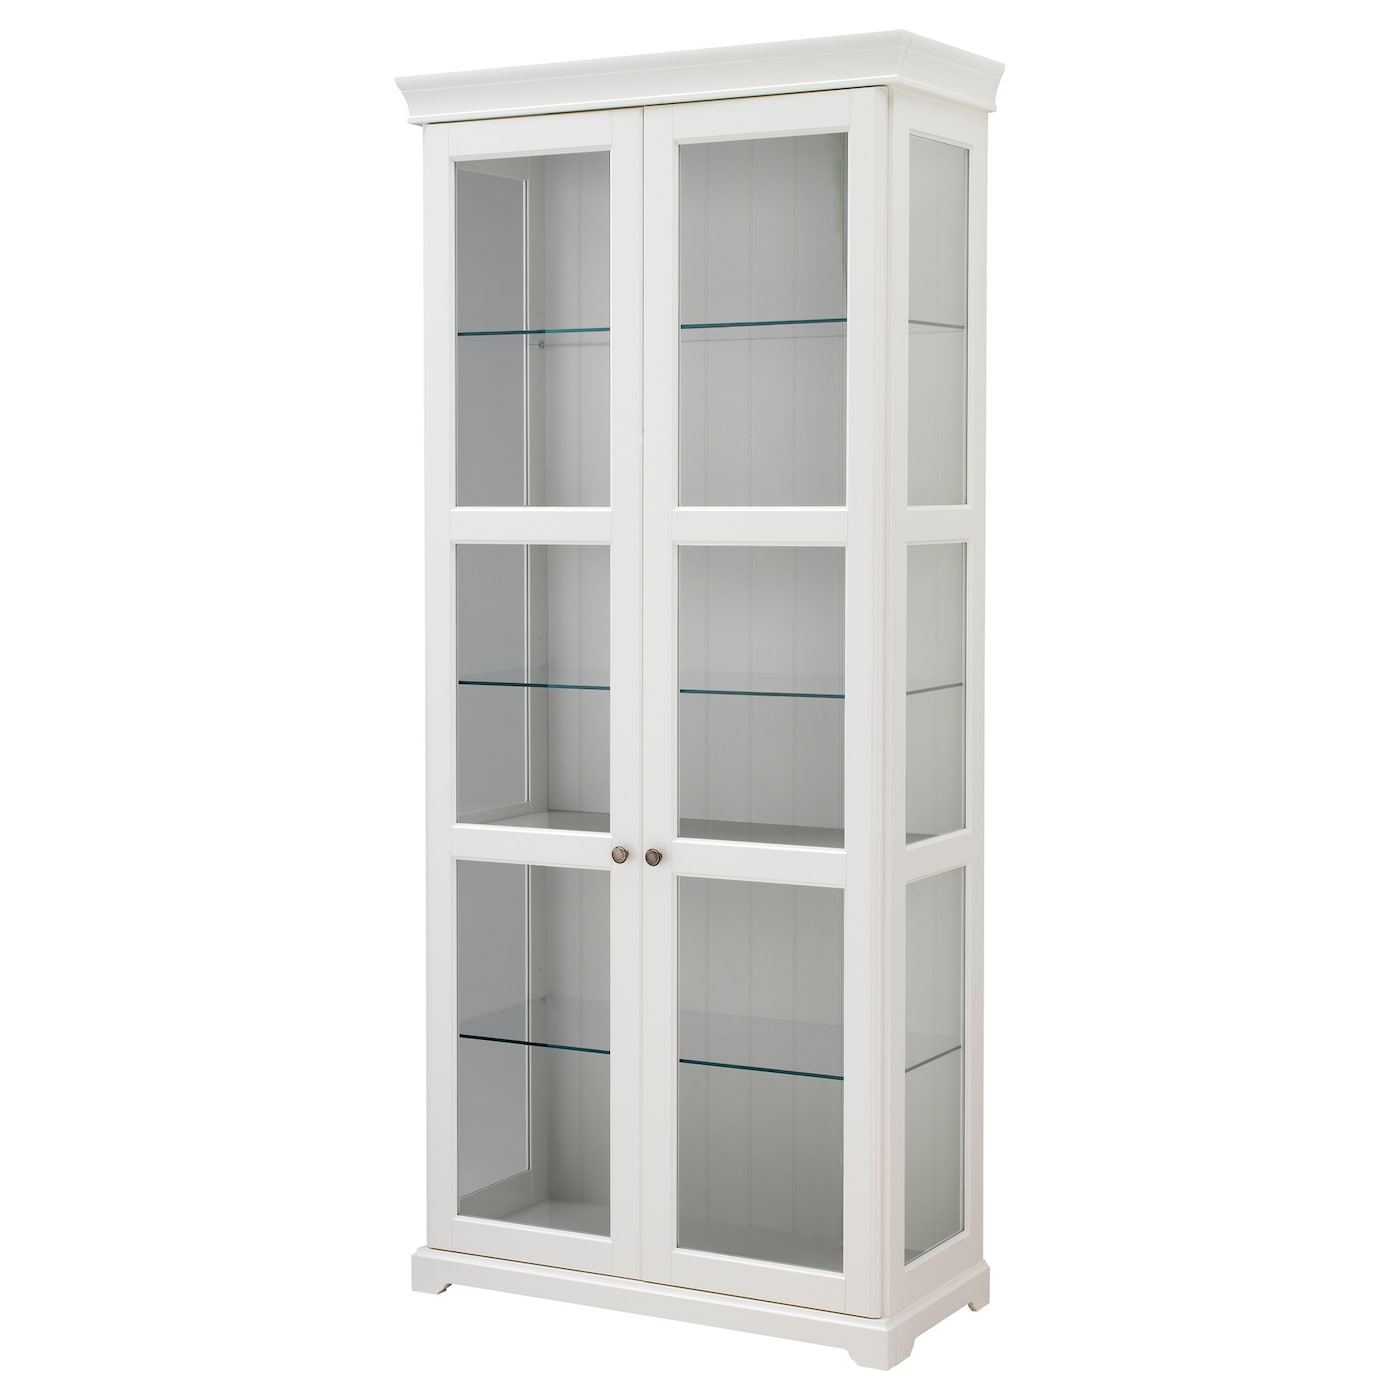 storage cabinets with glass doors liatorp glass door cabinet white 96x214 cm ikea 26855